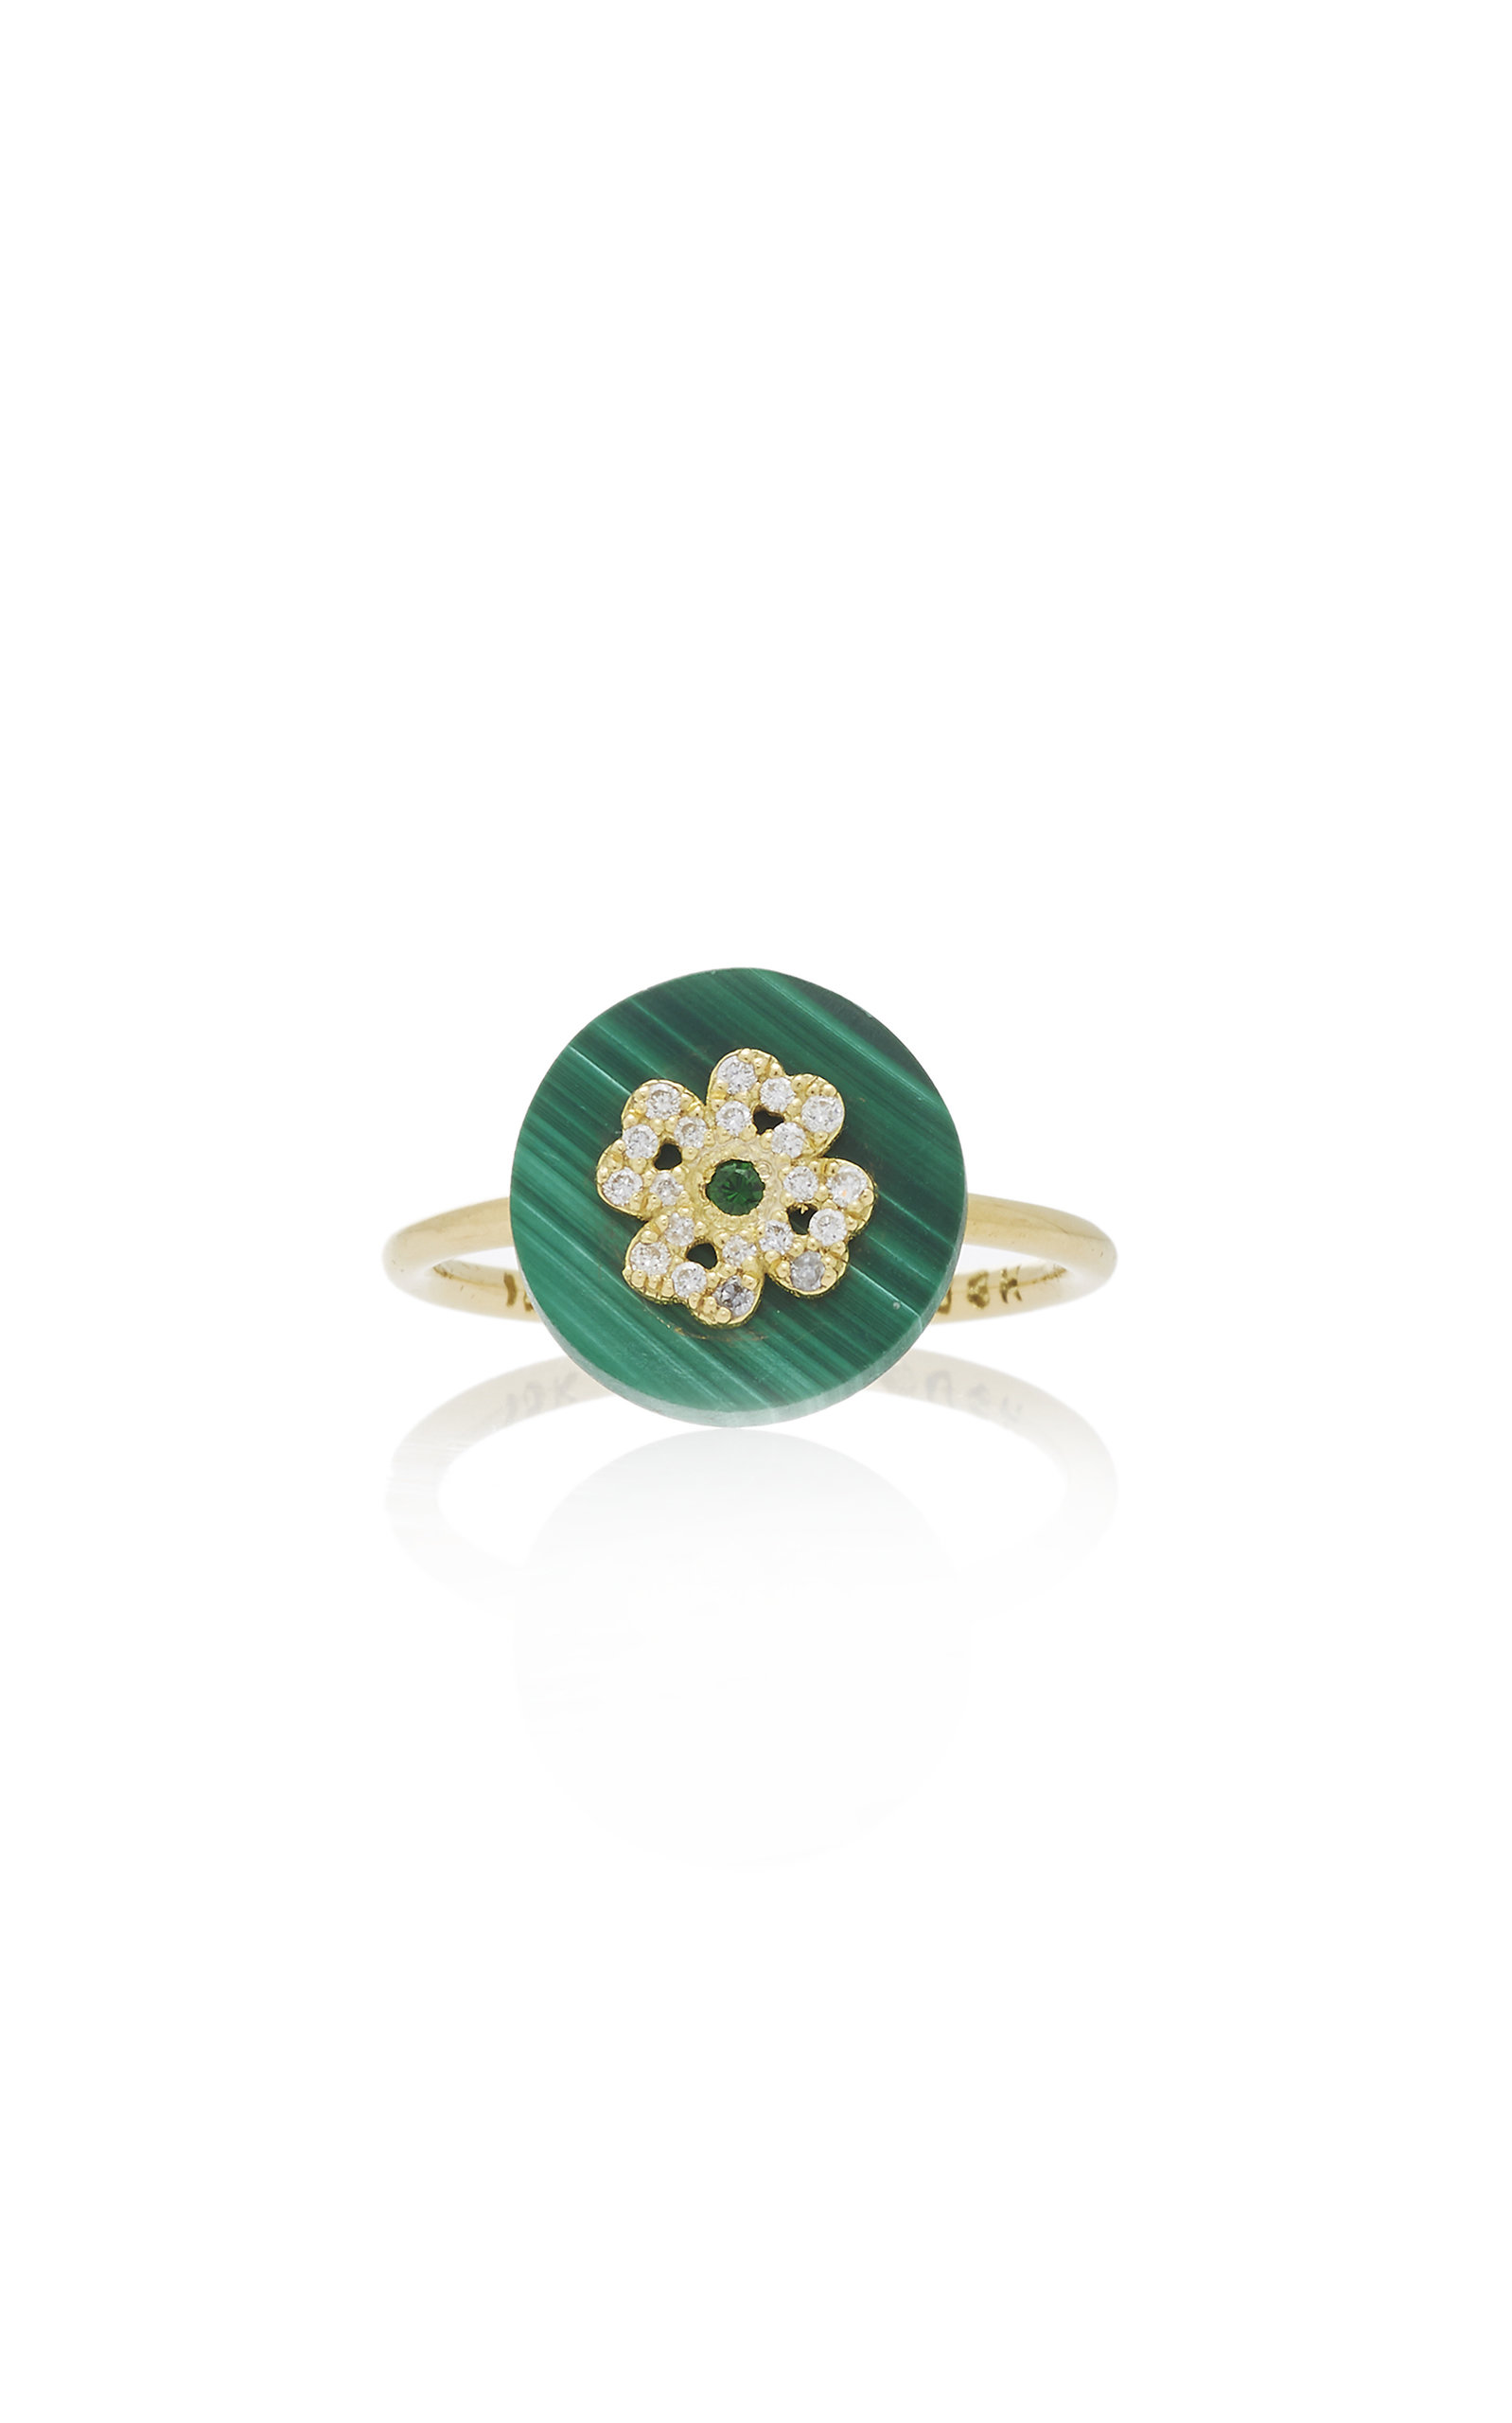 NOUSH JEWELRY COEXIST CLOVER ON MALACHITE RING